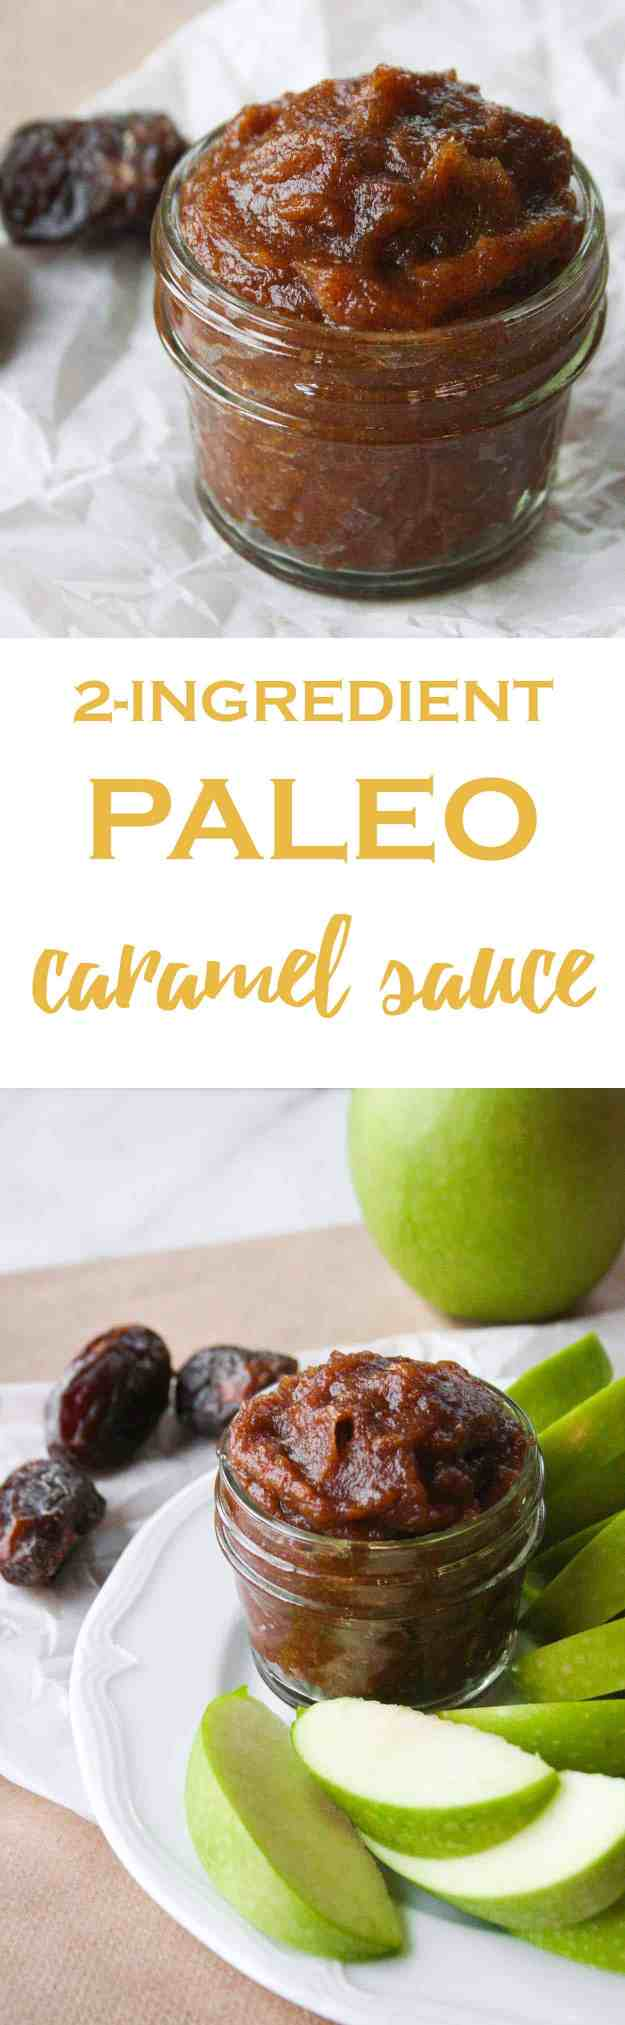 I've been reaching for this simple to make and deliciously decadent 2-Ingredient Paleo Caramel Sauce all fall. It's perfect on sliced apples! | hungrybynature.com